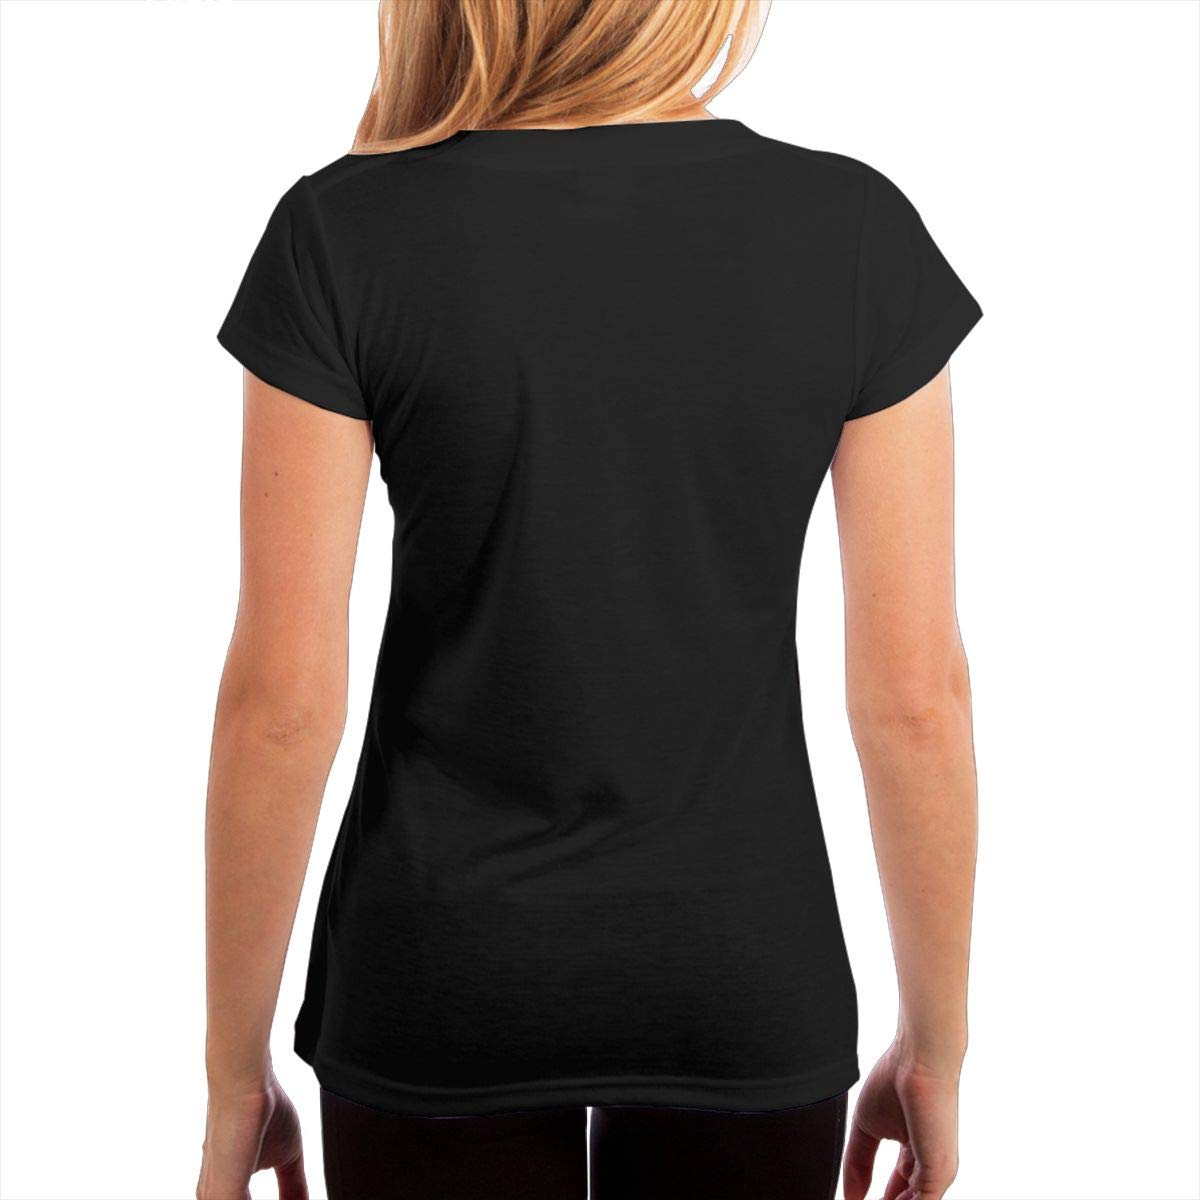 What is Your Superpower Cotton Female Vneck Line Short Sleeve Tshirts Tee Casual Top/&Tee Black